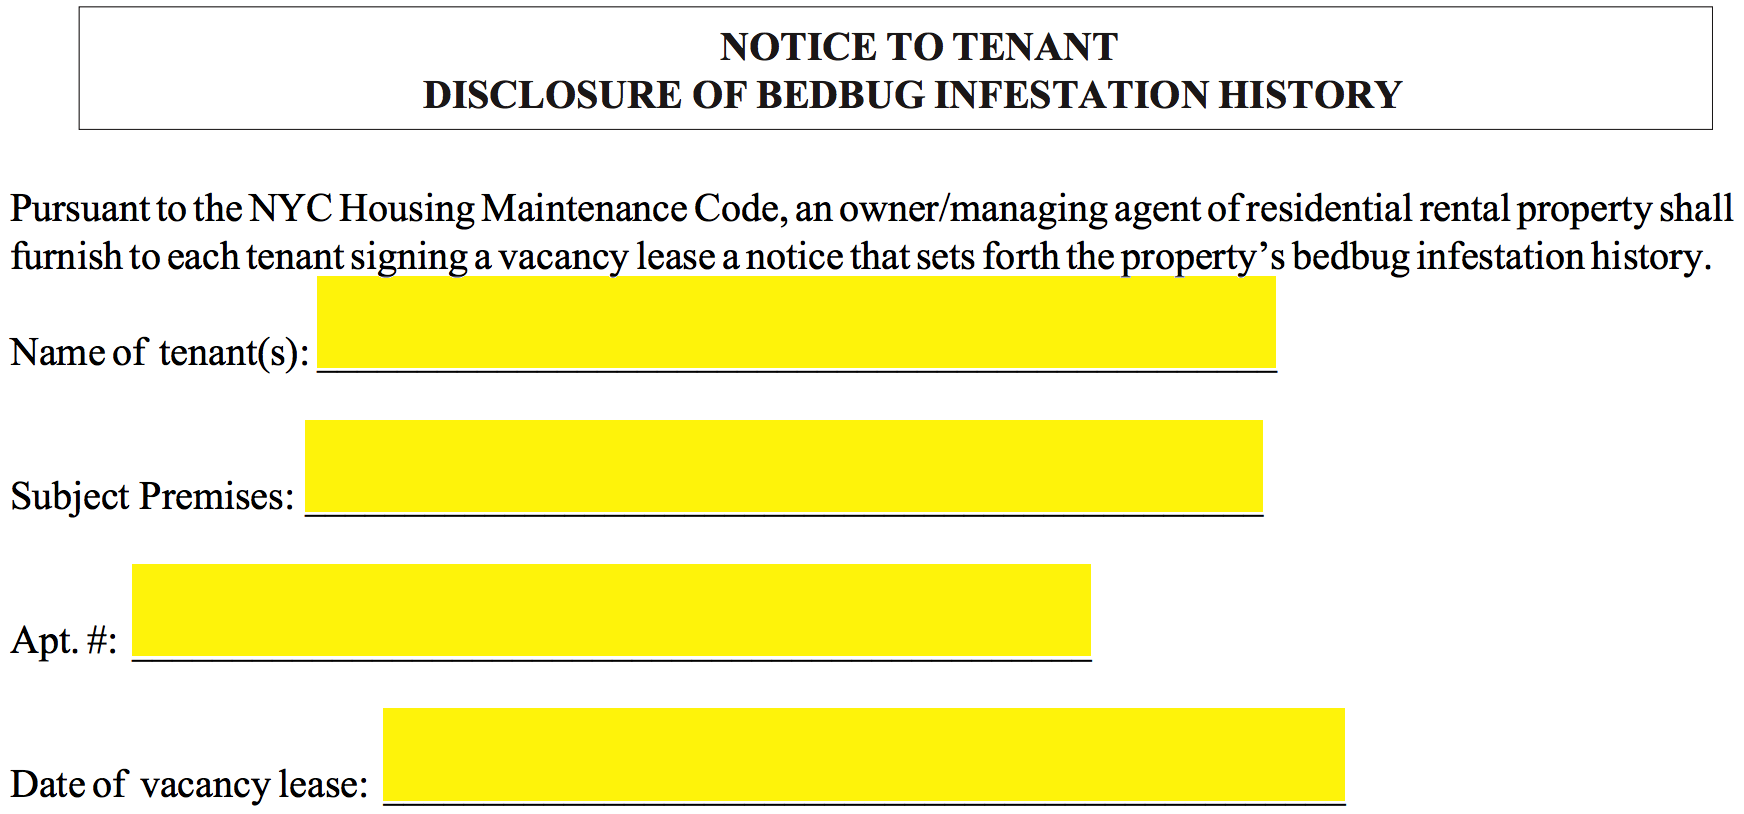 Free bed bug lease addendum template pdf eforms free fillable step 3 select the appropriate box to inform the tenant of the rental units bed bug history if eradication measures were taken on a specific floor spiritdancerdesigns Gallery